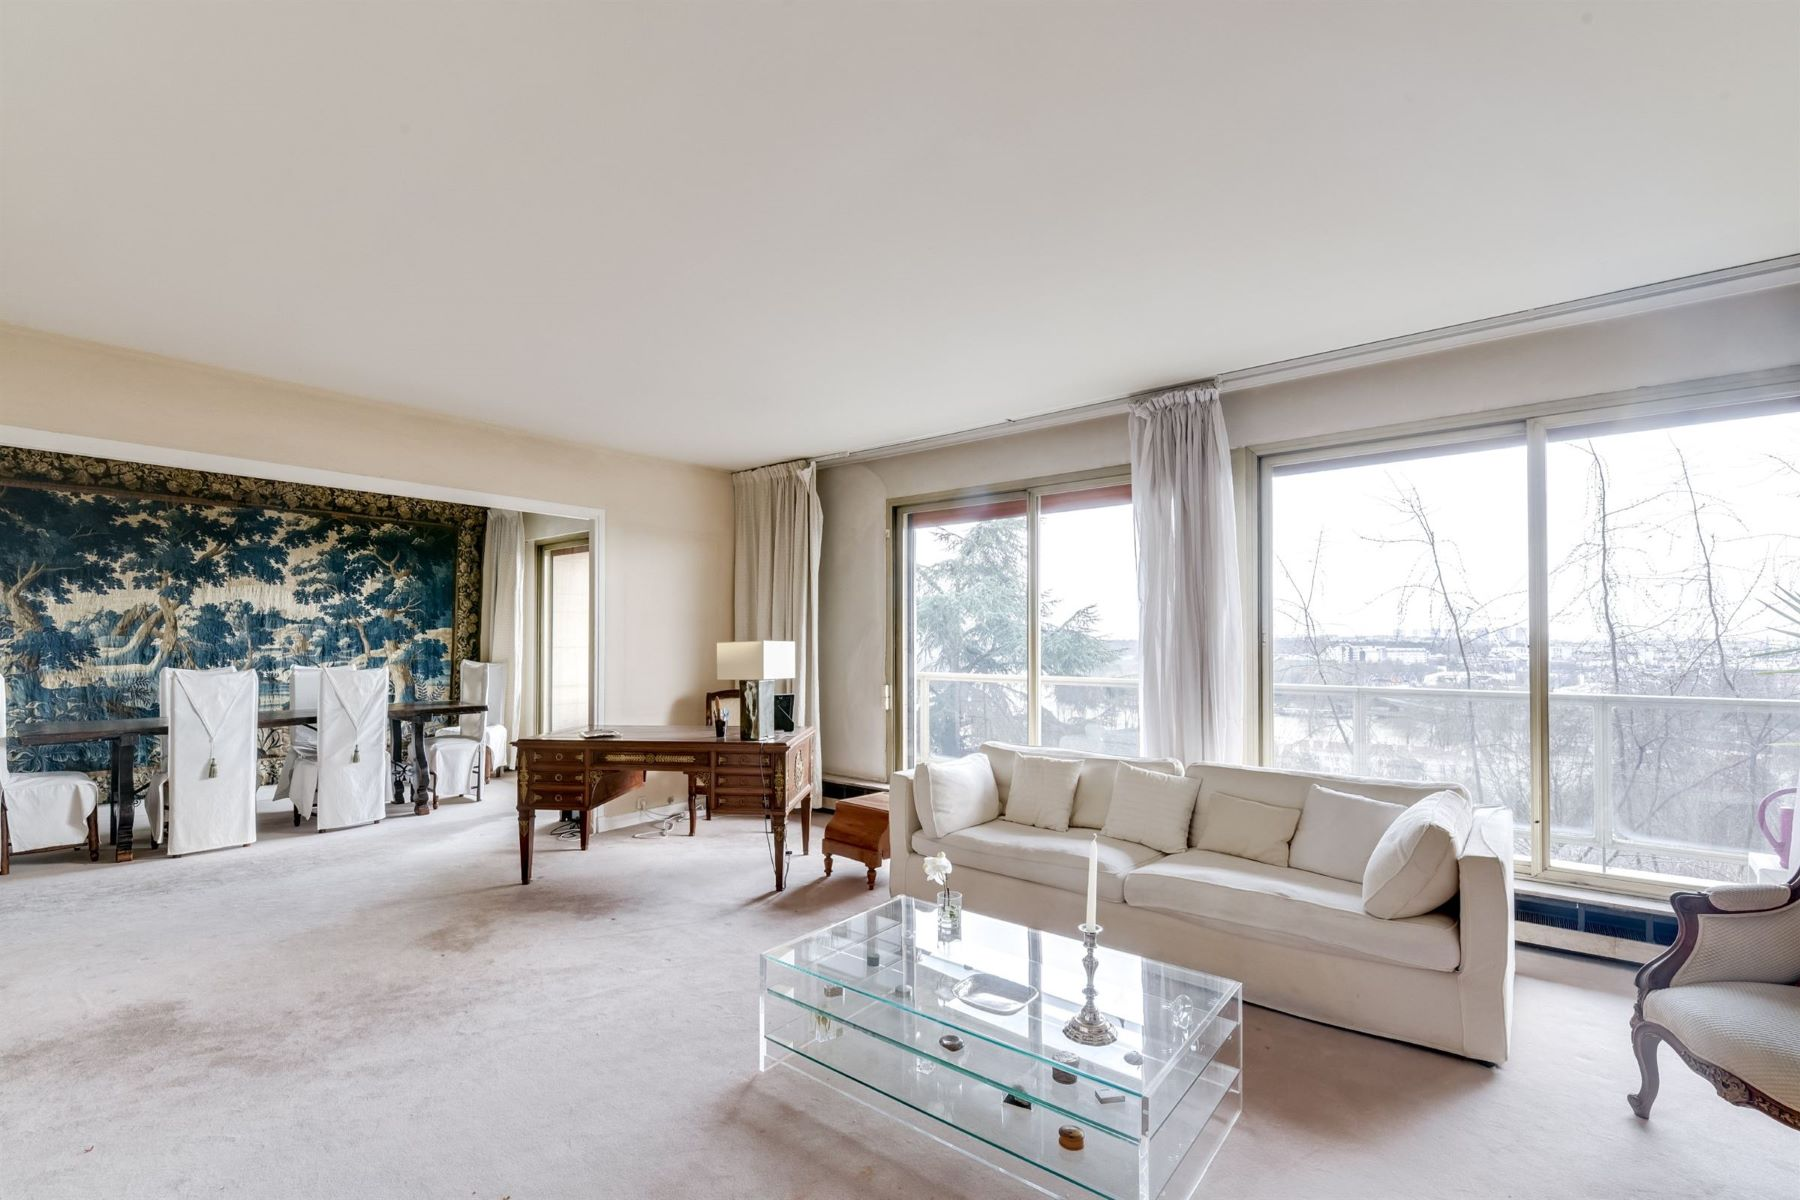 Apartment for Sale at Eiffel Tower view apartment for sale in Saint-Cloud Parc de Béarn Other Ile-De-France, Ile-De-France, 92210 France